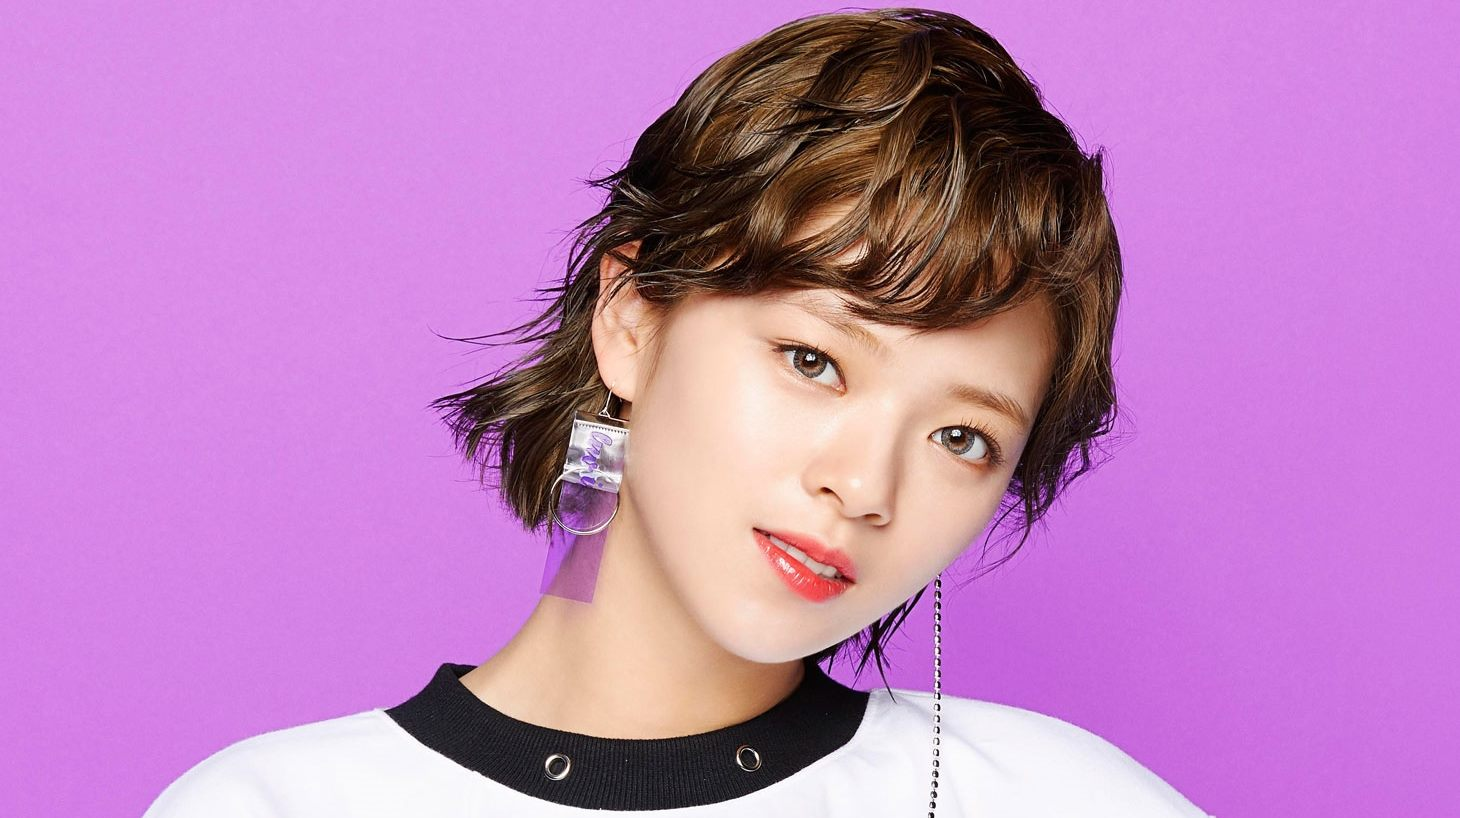 Twice Jeongyeon Profile